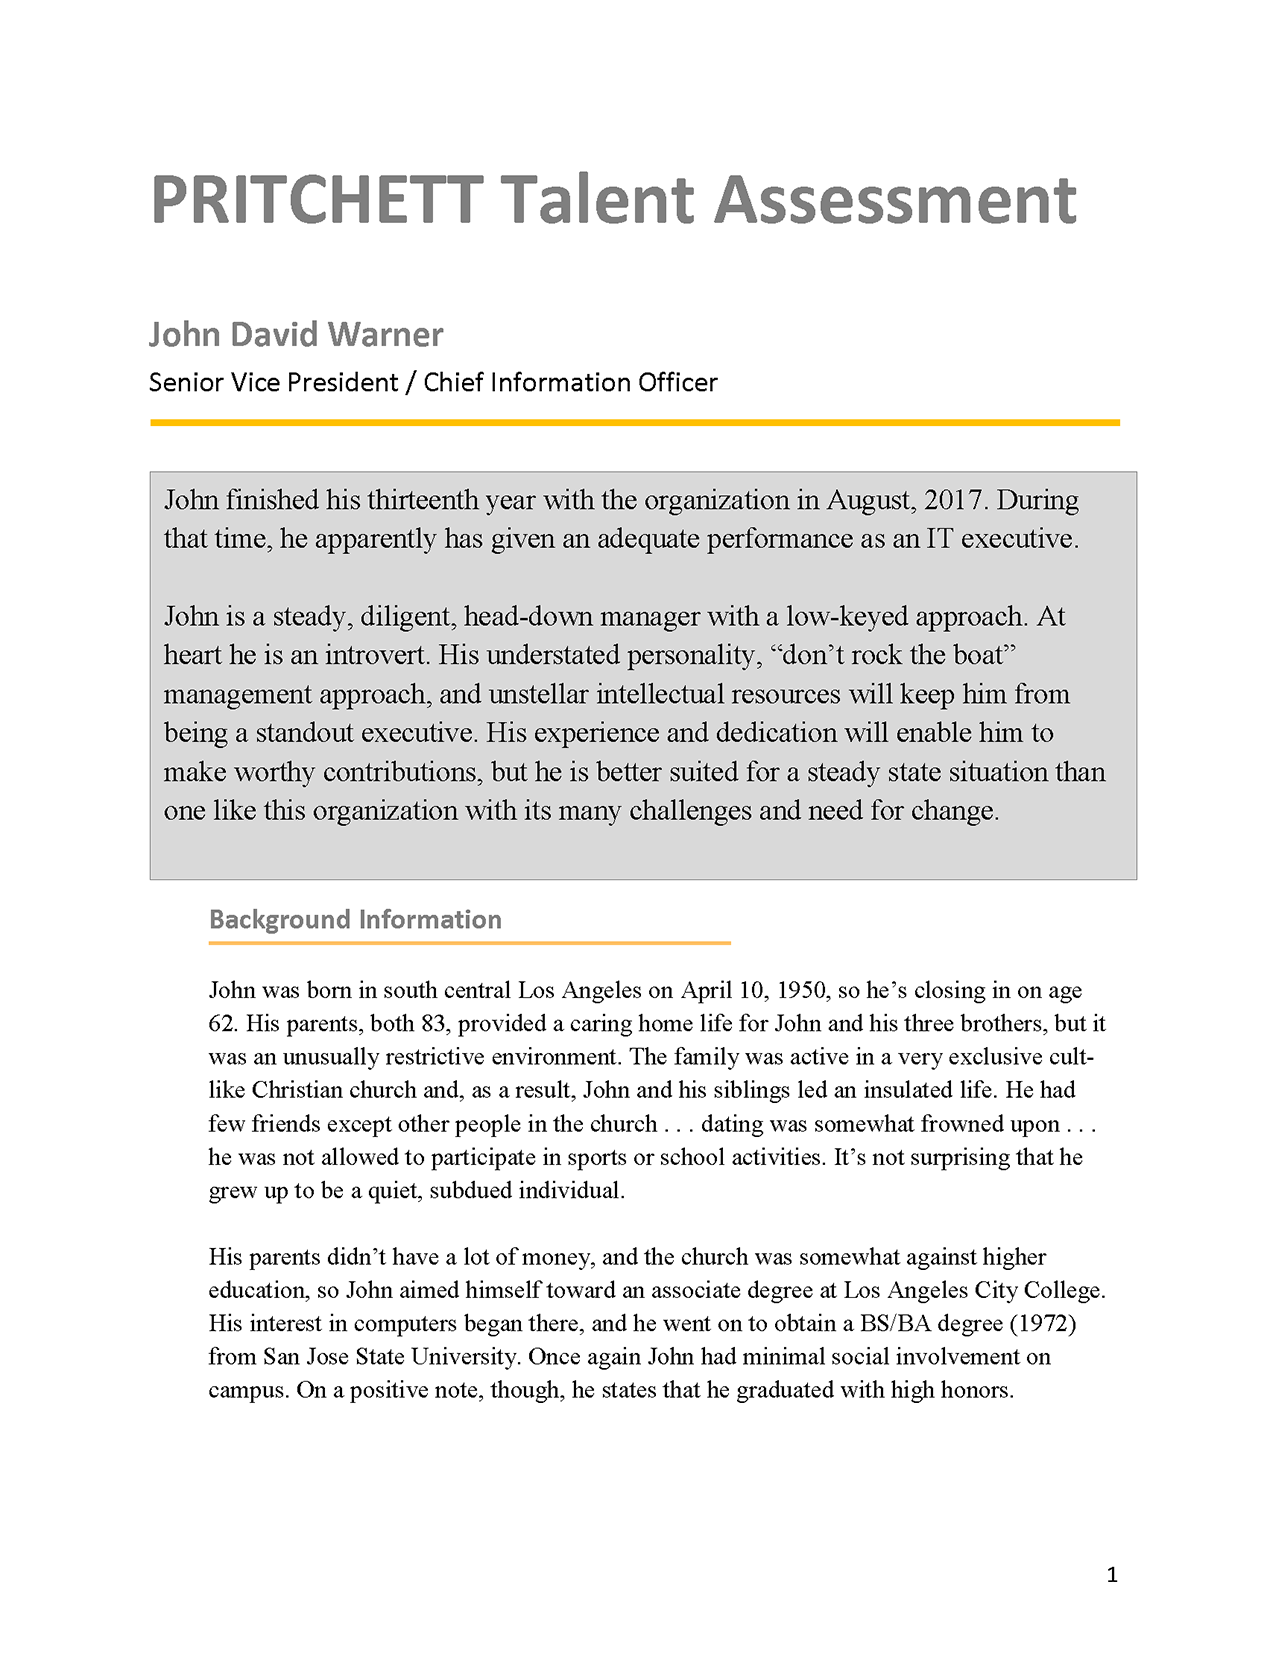 Senior Vice President Talent Assessment